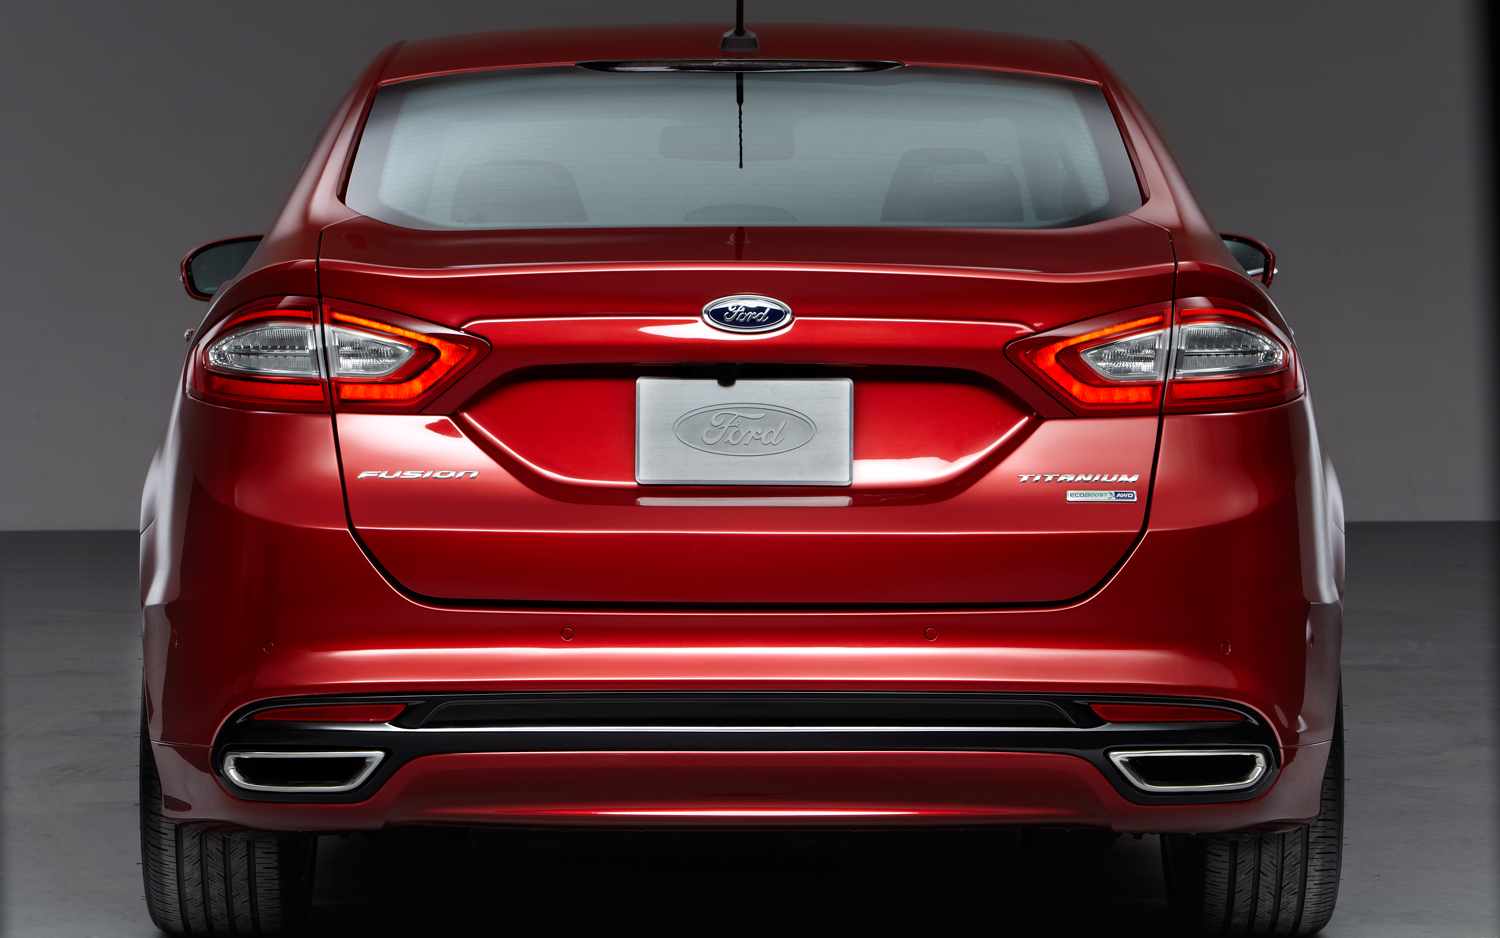 Ford fusion 2015 photo - 7